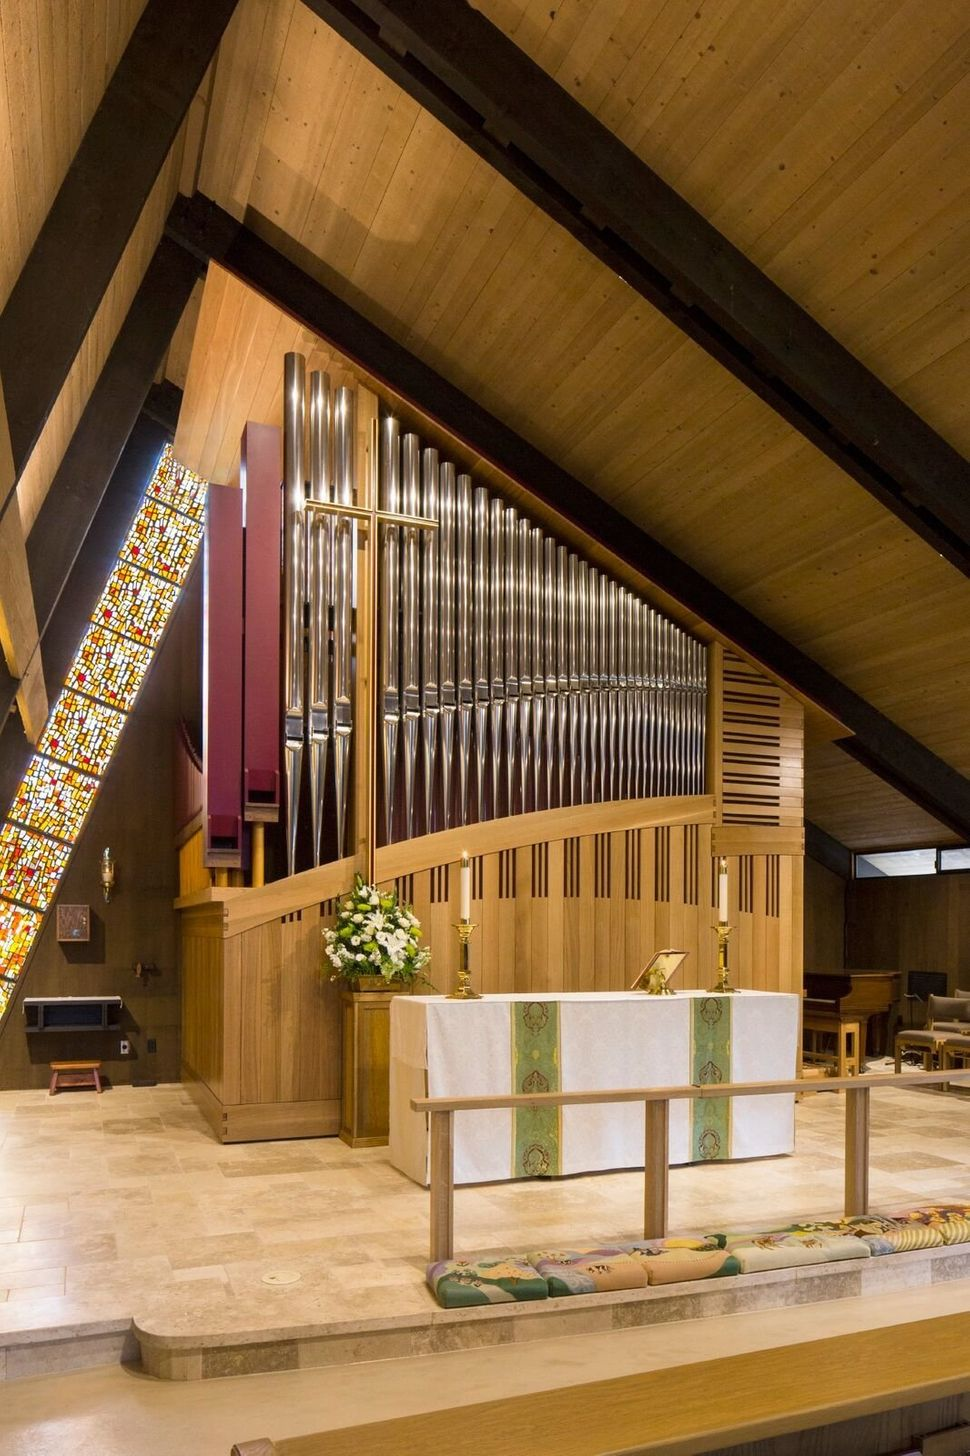 Dobson Pipe Organ Builders, Ltd.; Pipe Organ; St. Dunstan's Episcopal Church; Carmel Valley, California; Liturgical Fur